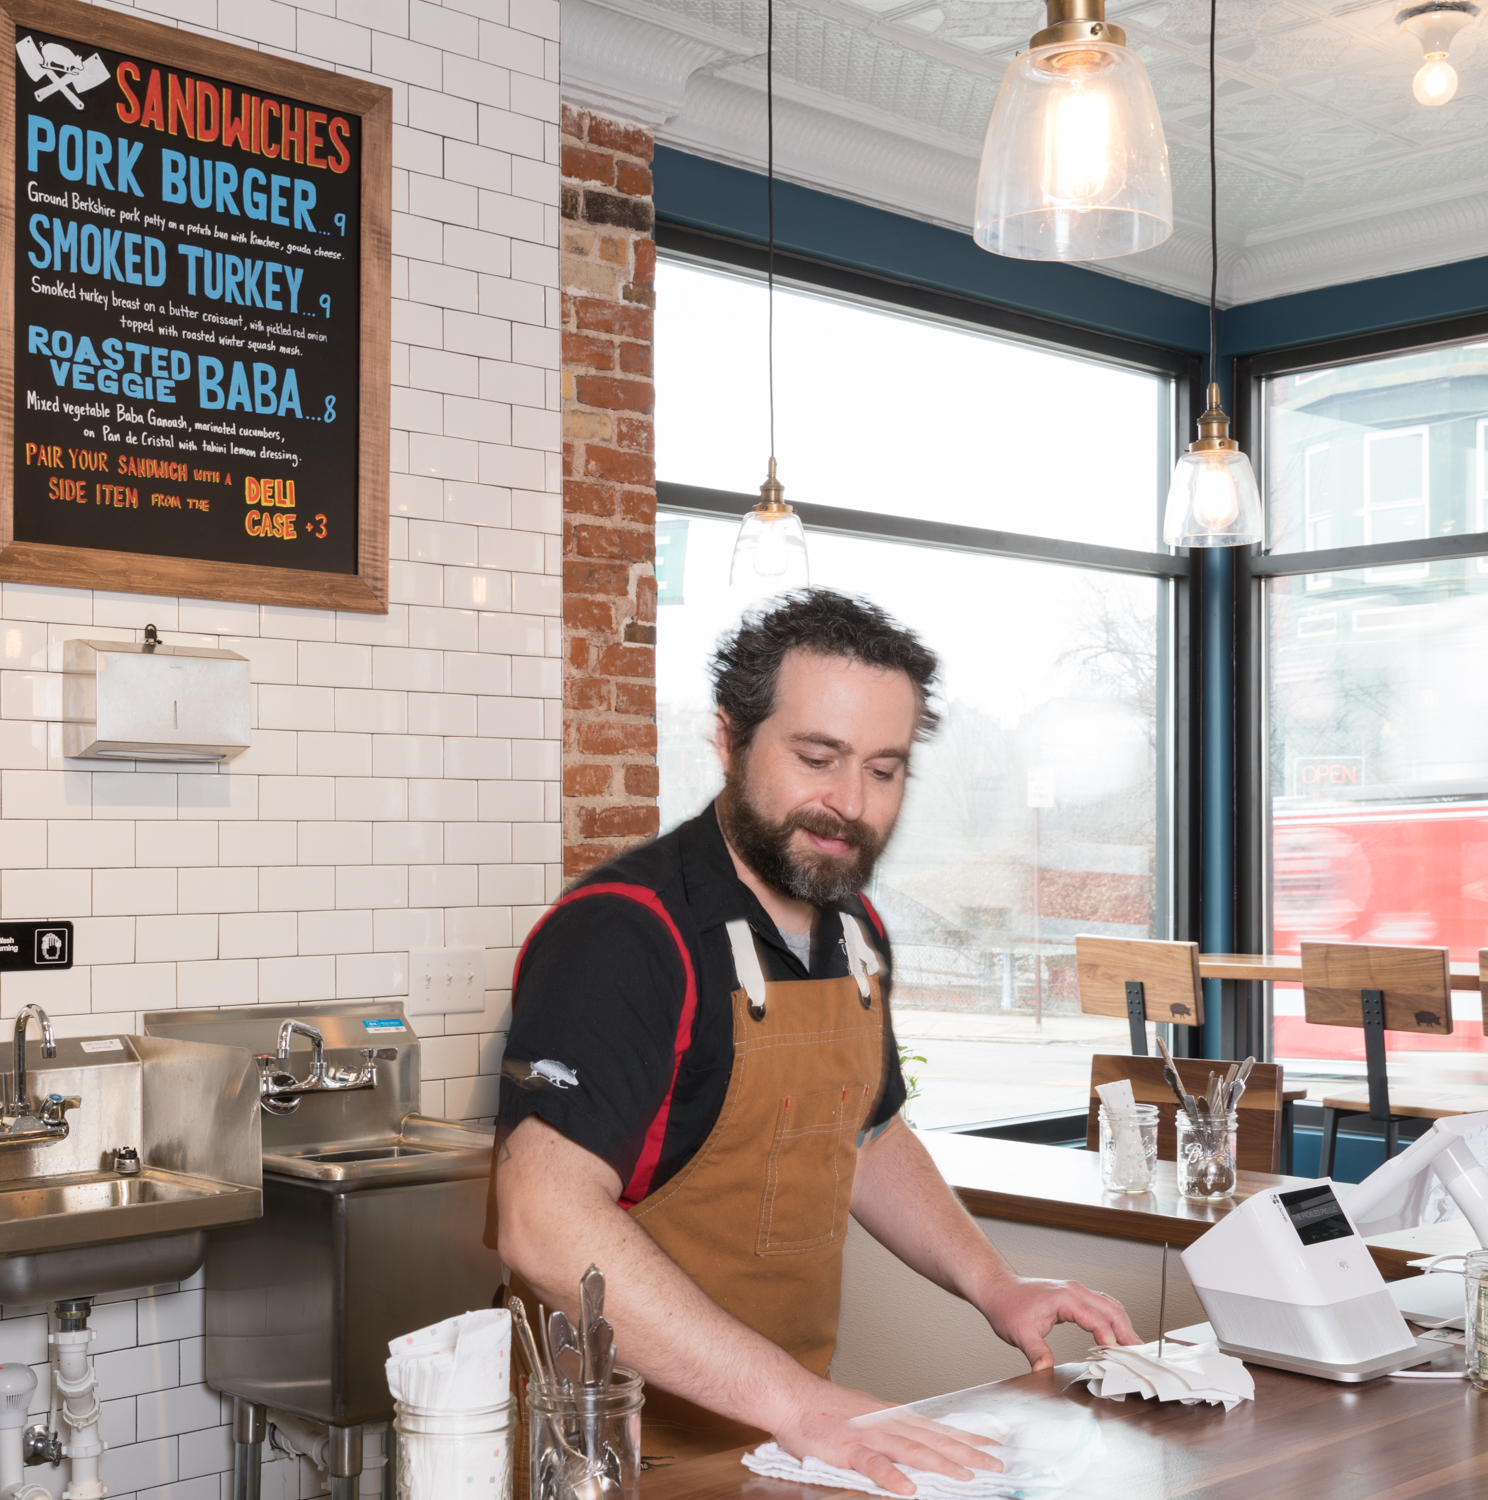 Owner and Chef Gary Leybman keeps the shop squeaky clean. / Image: Marlene Rounds // Published: 3.12.19